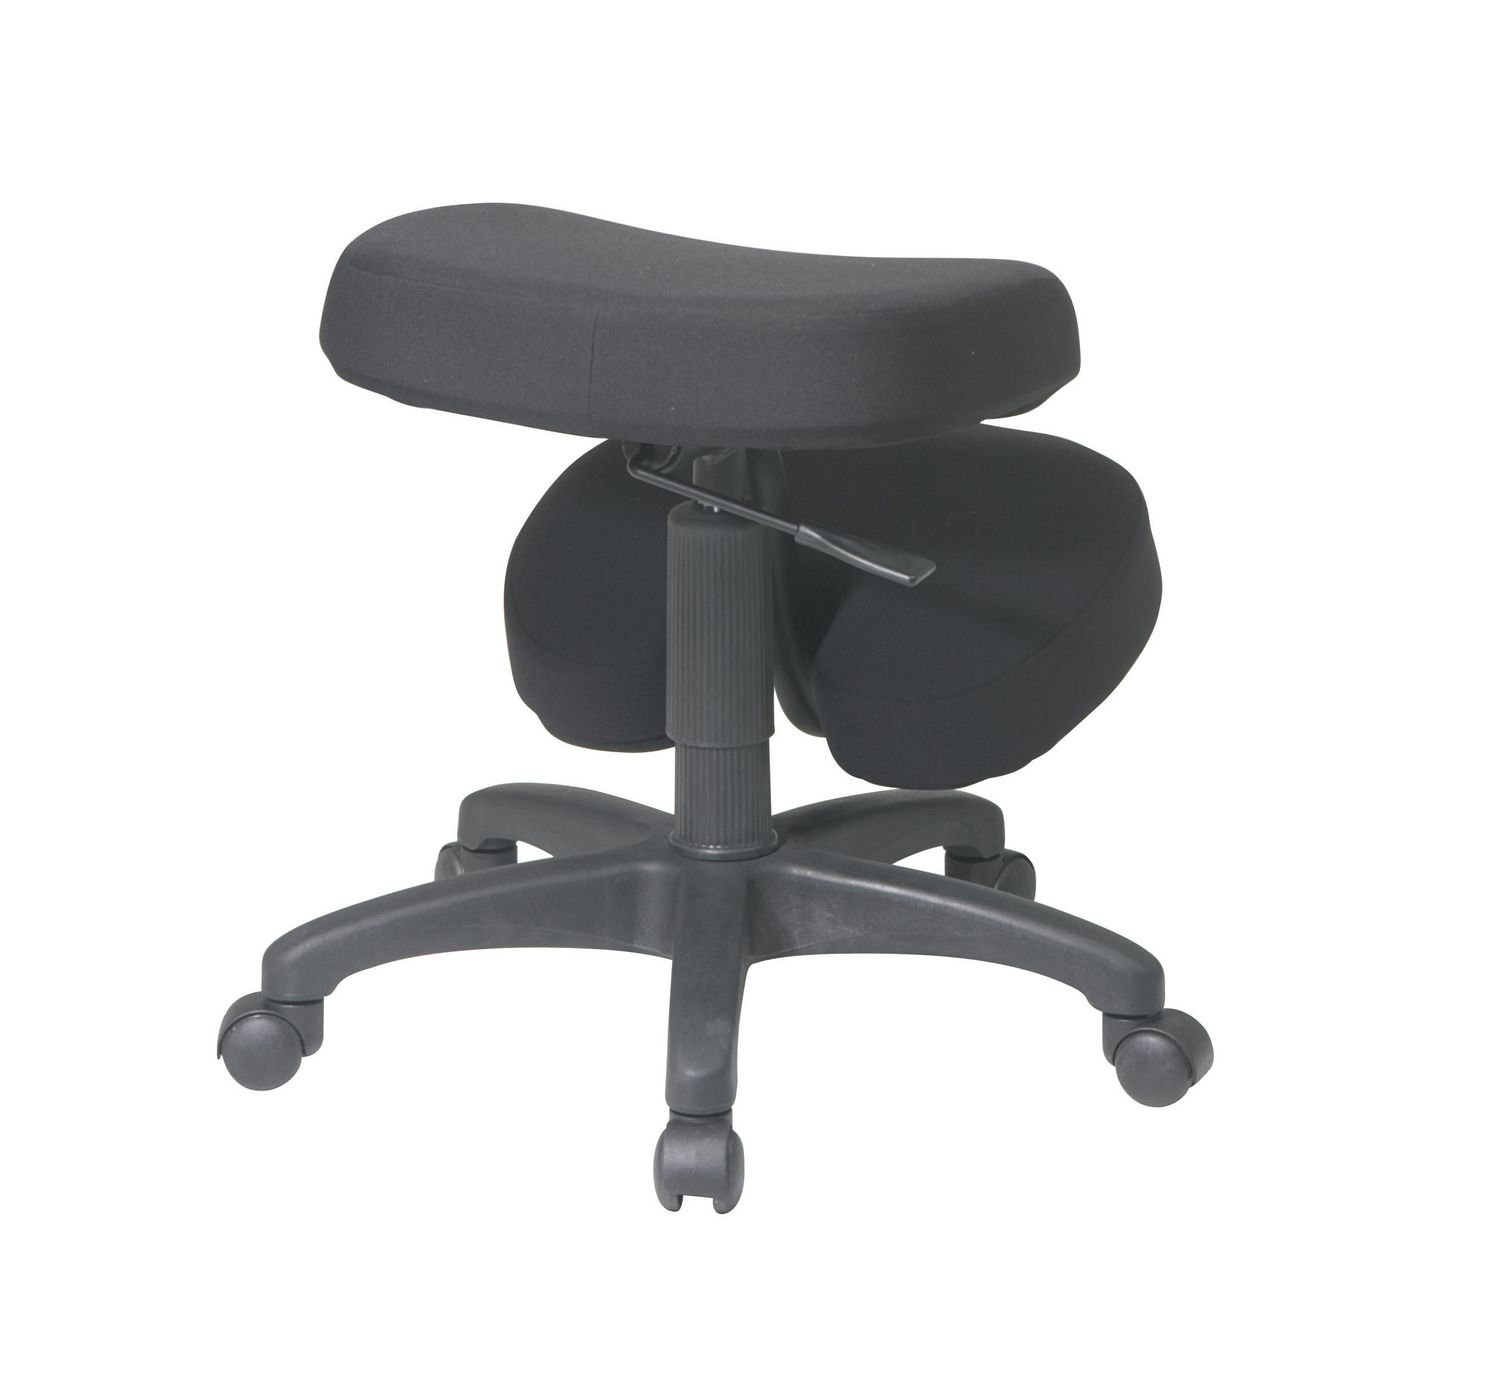 office star products office star work smart ergonomically designed